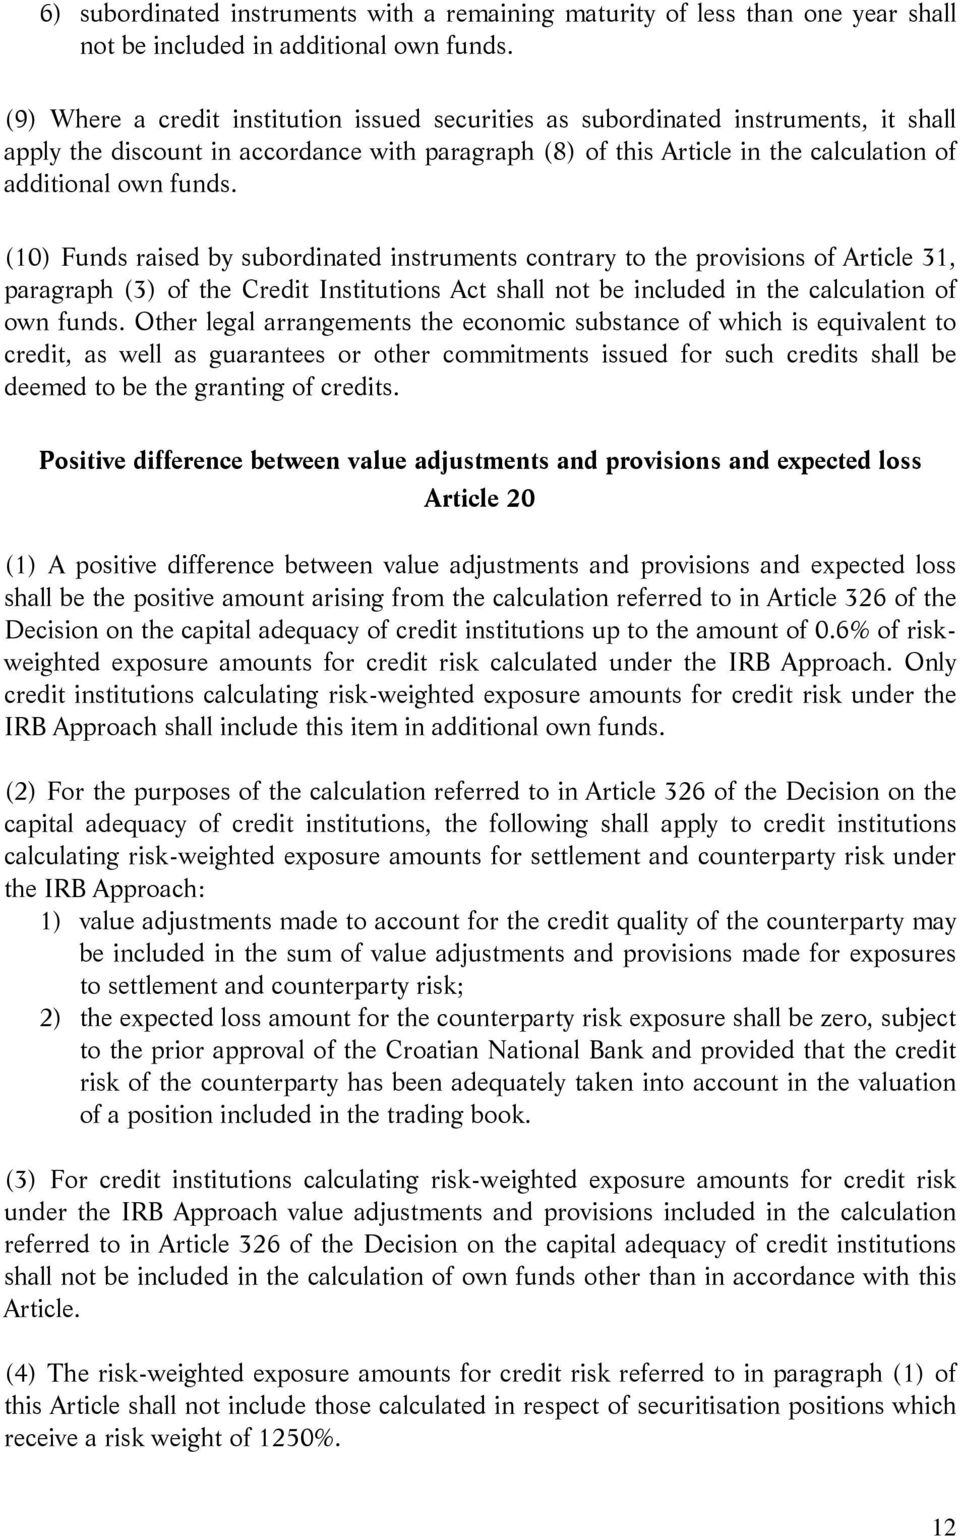 (10) Funds raised by subordinated instruments contrary to the provisions of Article 31, paragraph (3) of the Credit Institutions Act shall not be included in the calculation of own funds.